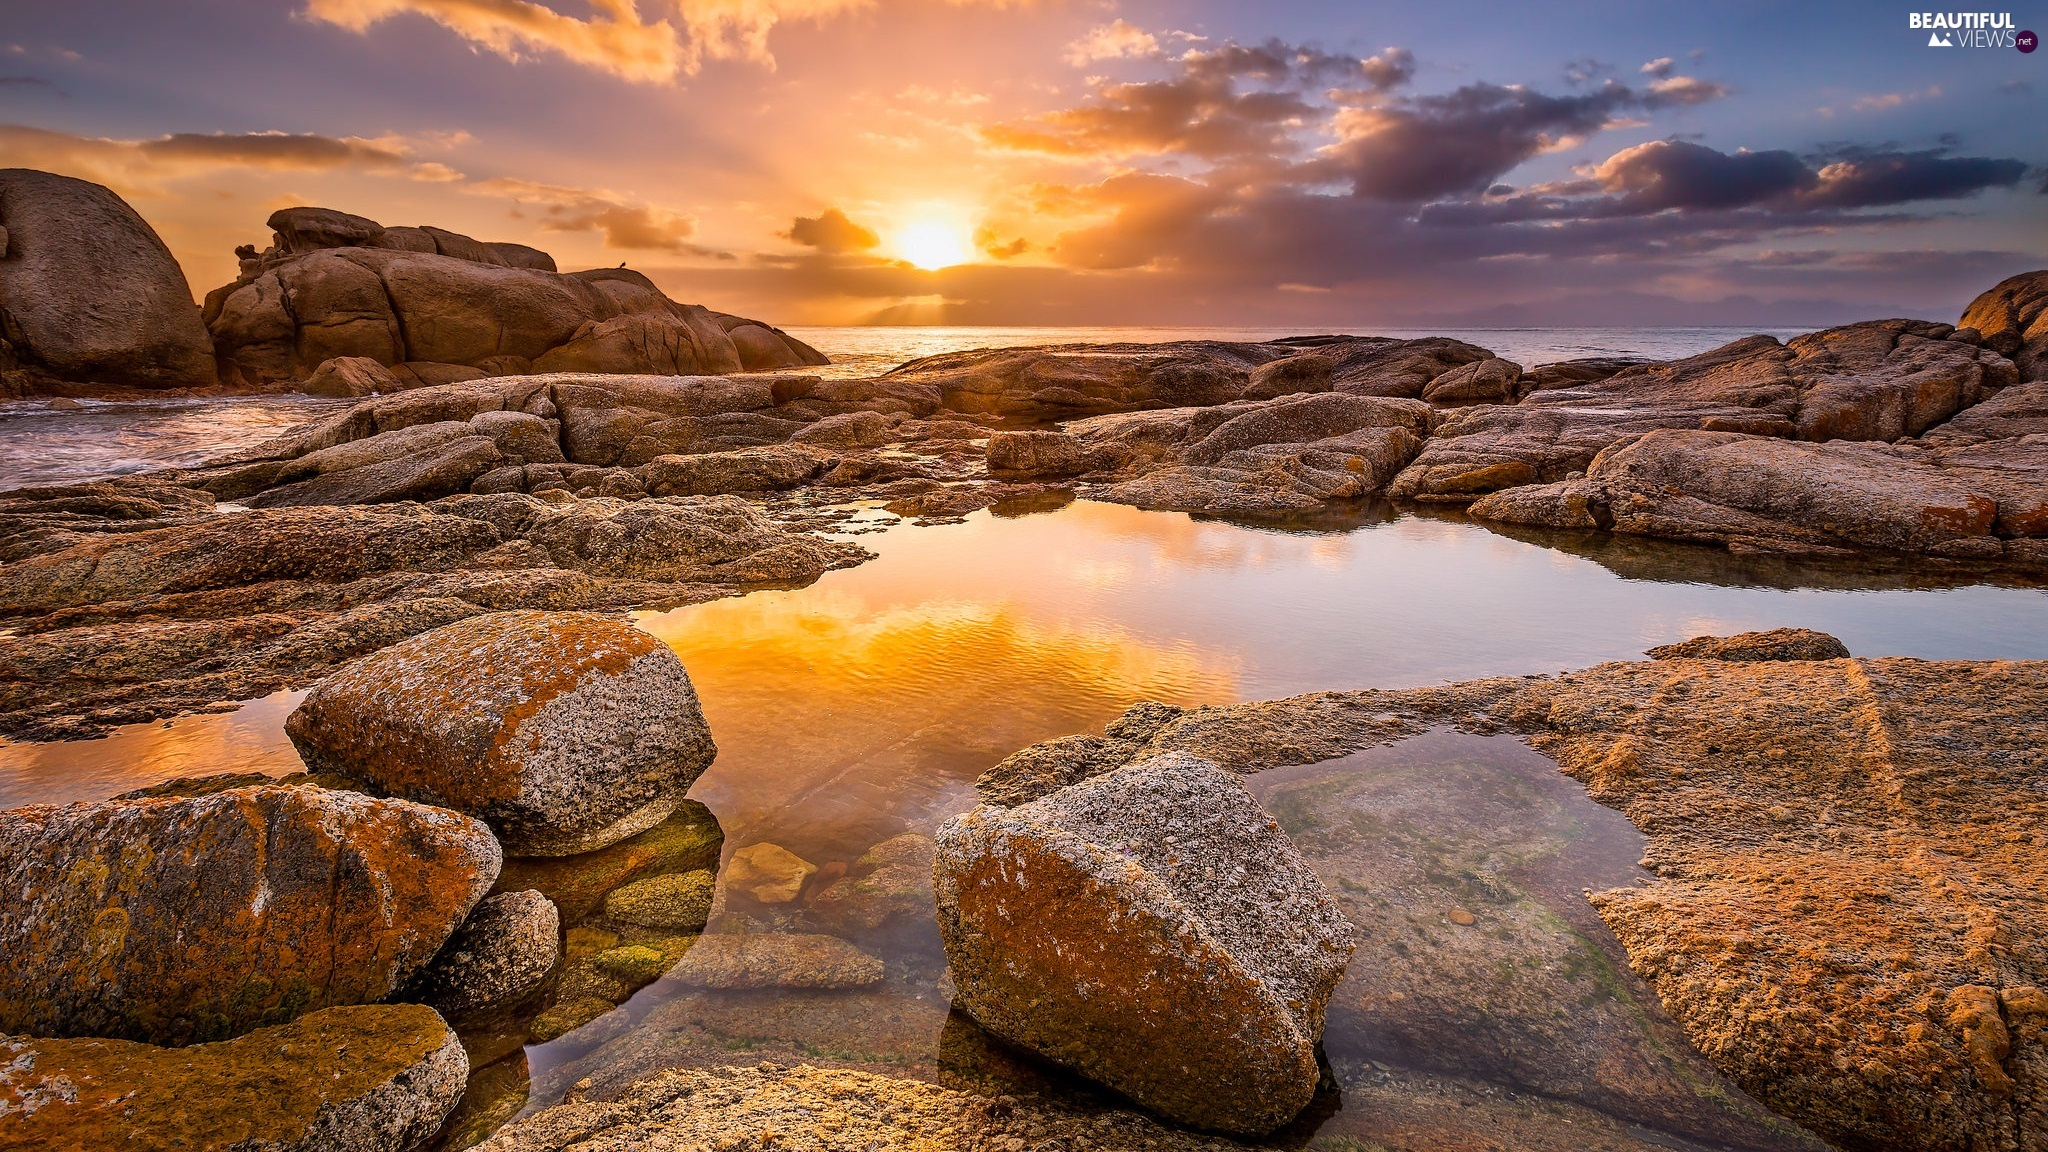 Boulders beach south africa sea stones great sunsets cape boulders beach south africa sea stones great sunsets cape peninsula publicscrutiny Images